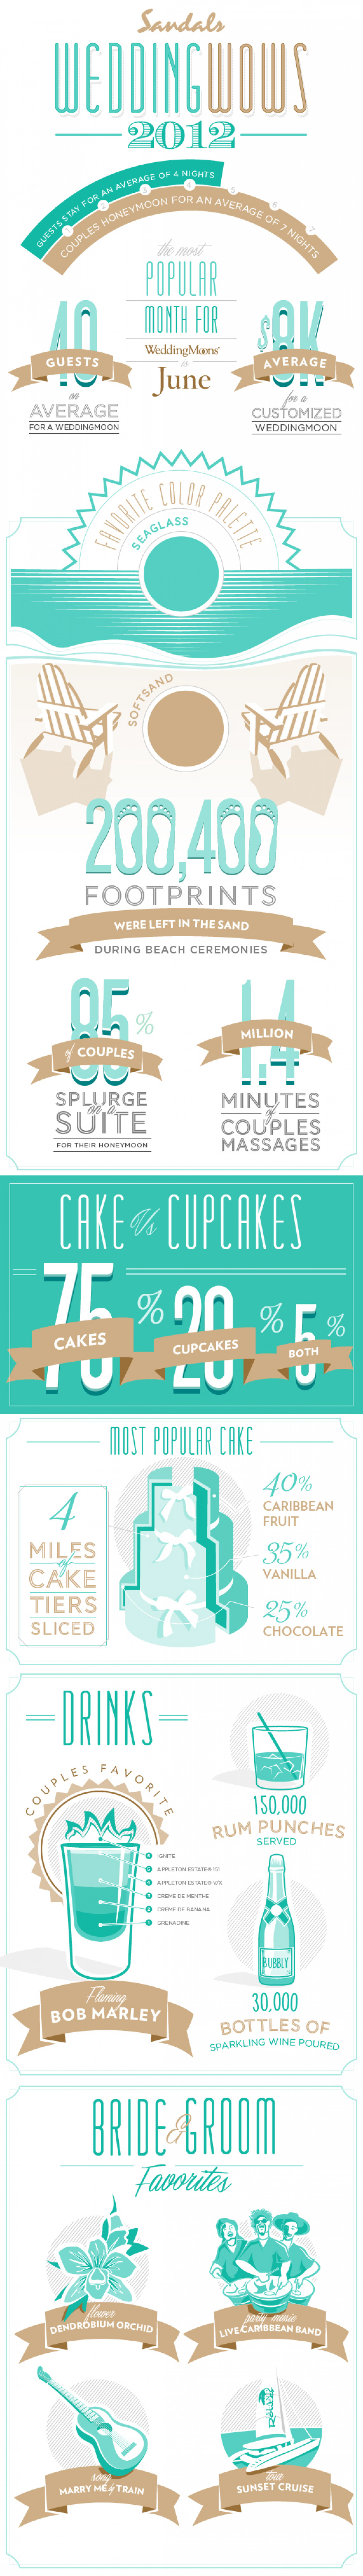 WeddingMoons 2012 Infographic Infographic